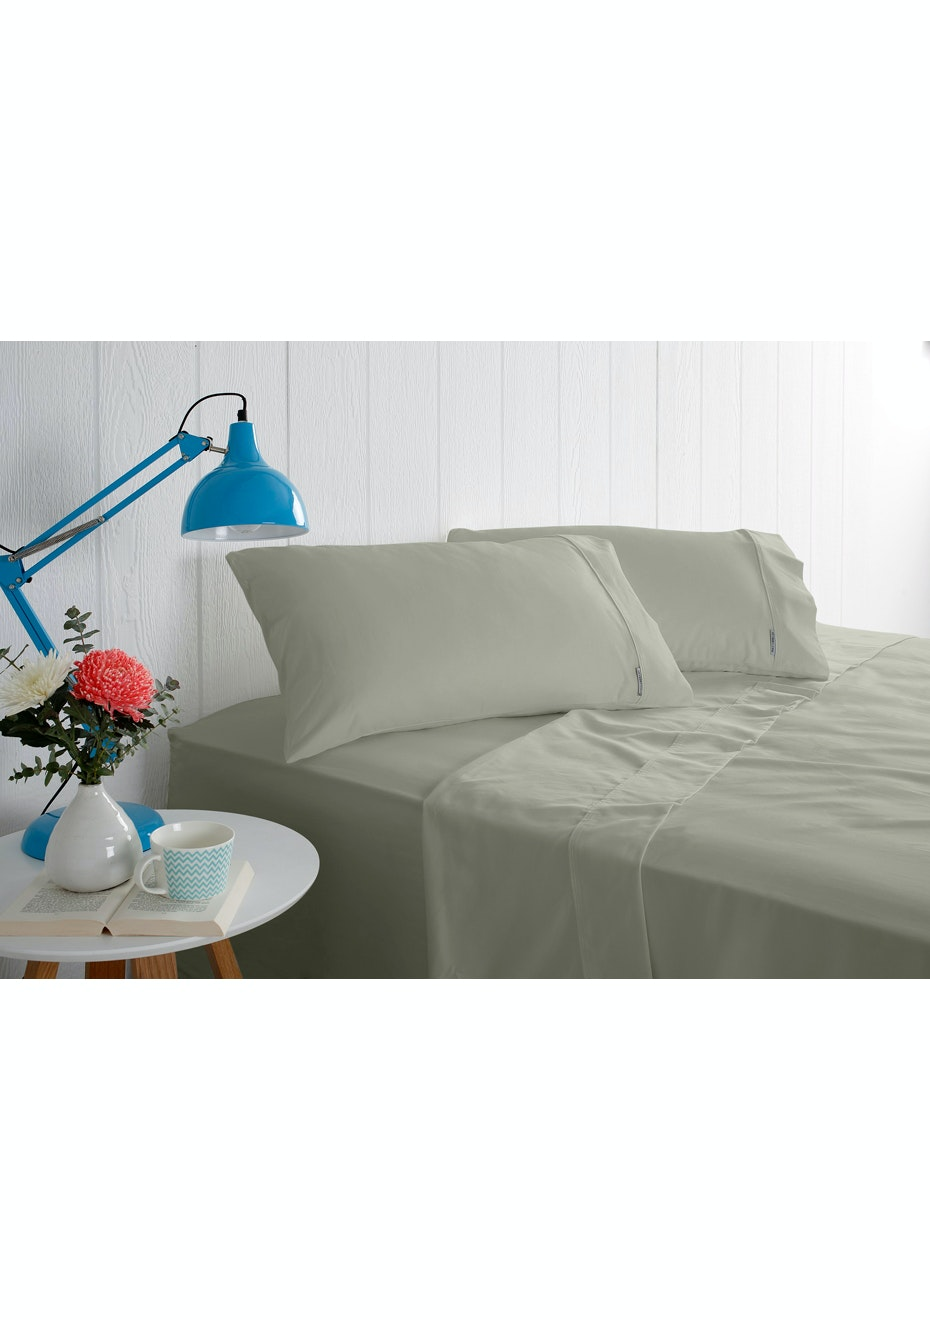 Odyssey Living 1000 Thread Count – Cotton Rich Sheet Sets - Slate - Queen Bed